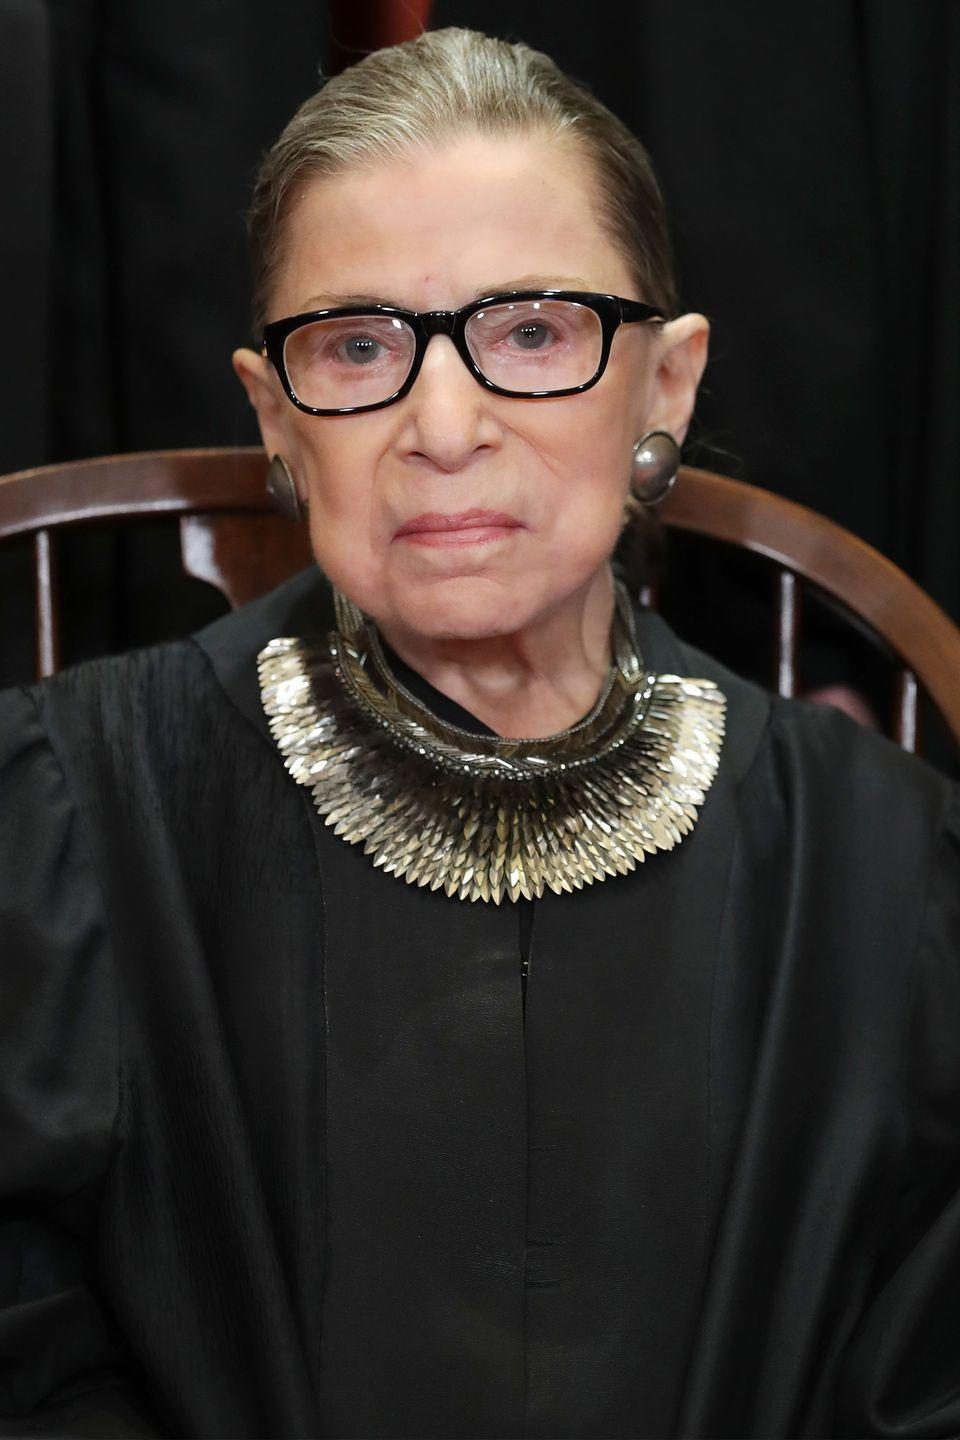 "<p>Through her fight in the Supreme Court for women's rights and equality, Ruth Bader Ginsburg's statement collars gained their own share of praise. Banana Republic even <a href=""https://www.harpersbazaar.com/fashion/trends/a25779096/banana-republic-ruth-bader-ginsburg-dissent-collar/"" rel=""nofollow noopener"" target=""_blank"" data-ylk=""slk:recently reissued"" class=""link rapid-noclick-resp"">recently reissued</a> one.</p>"